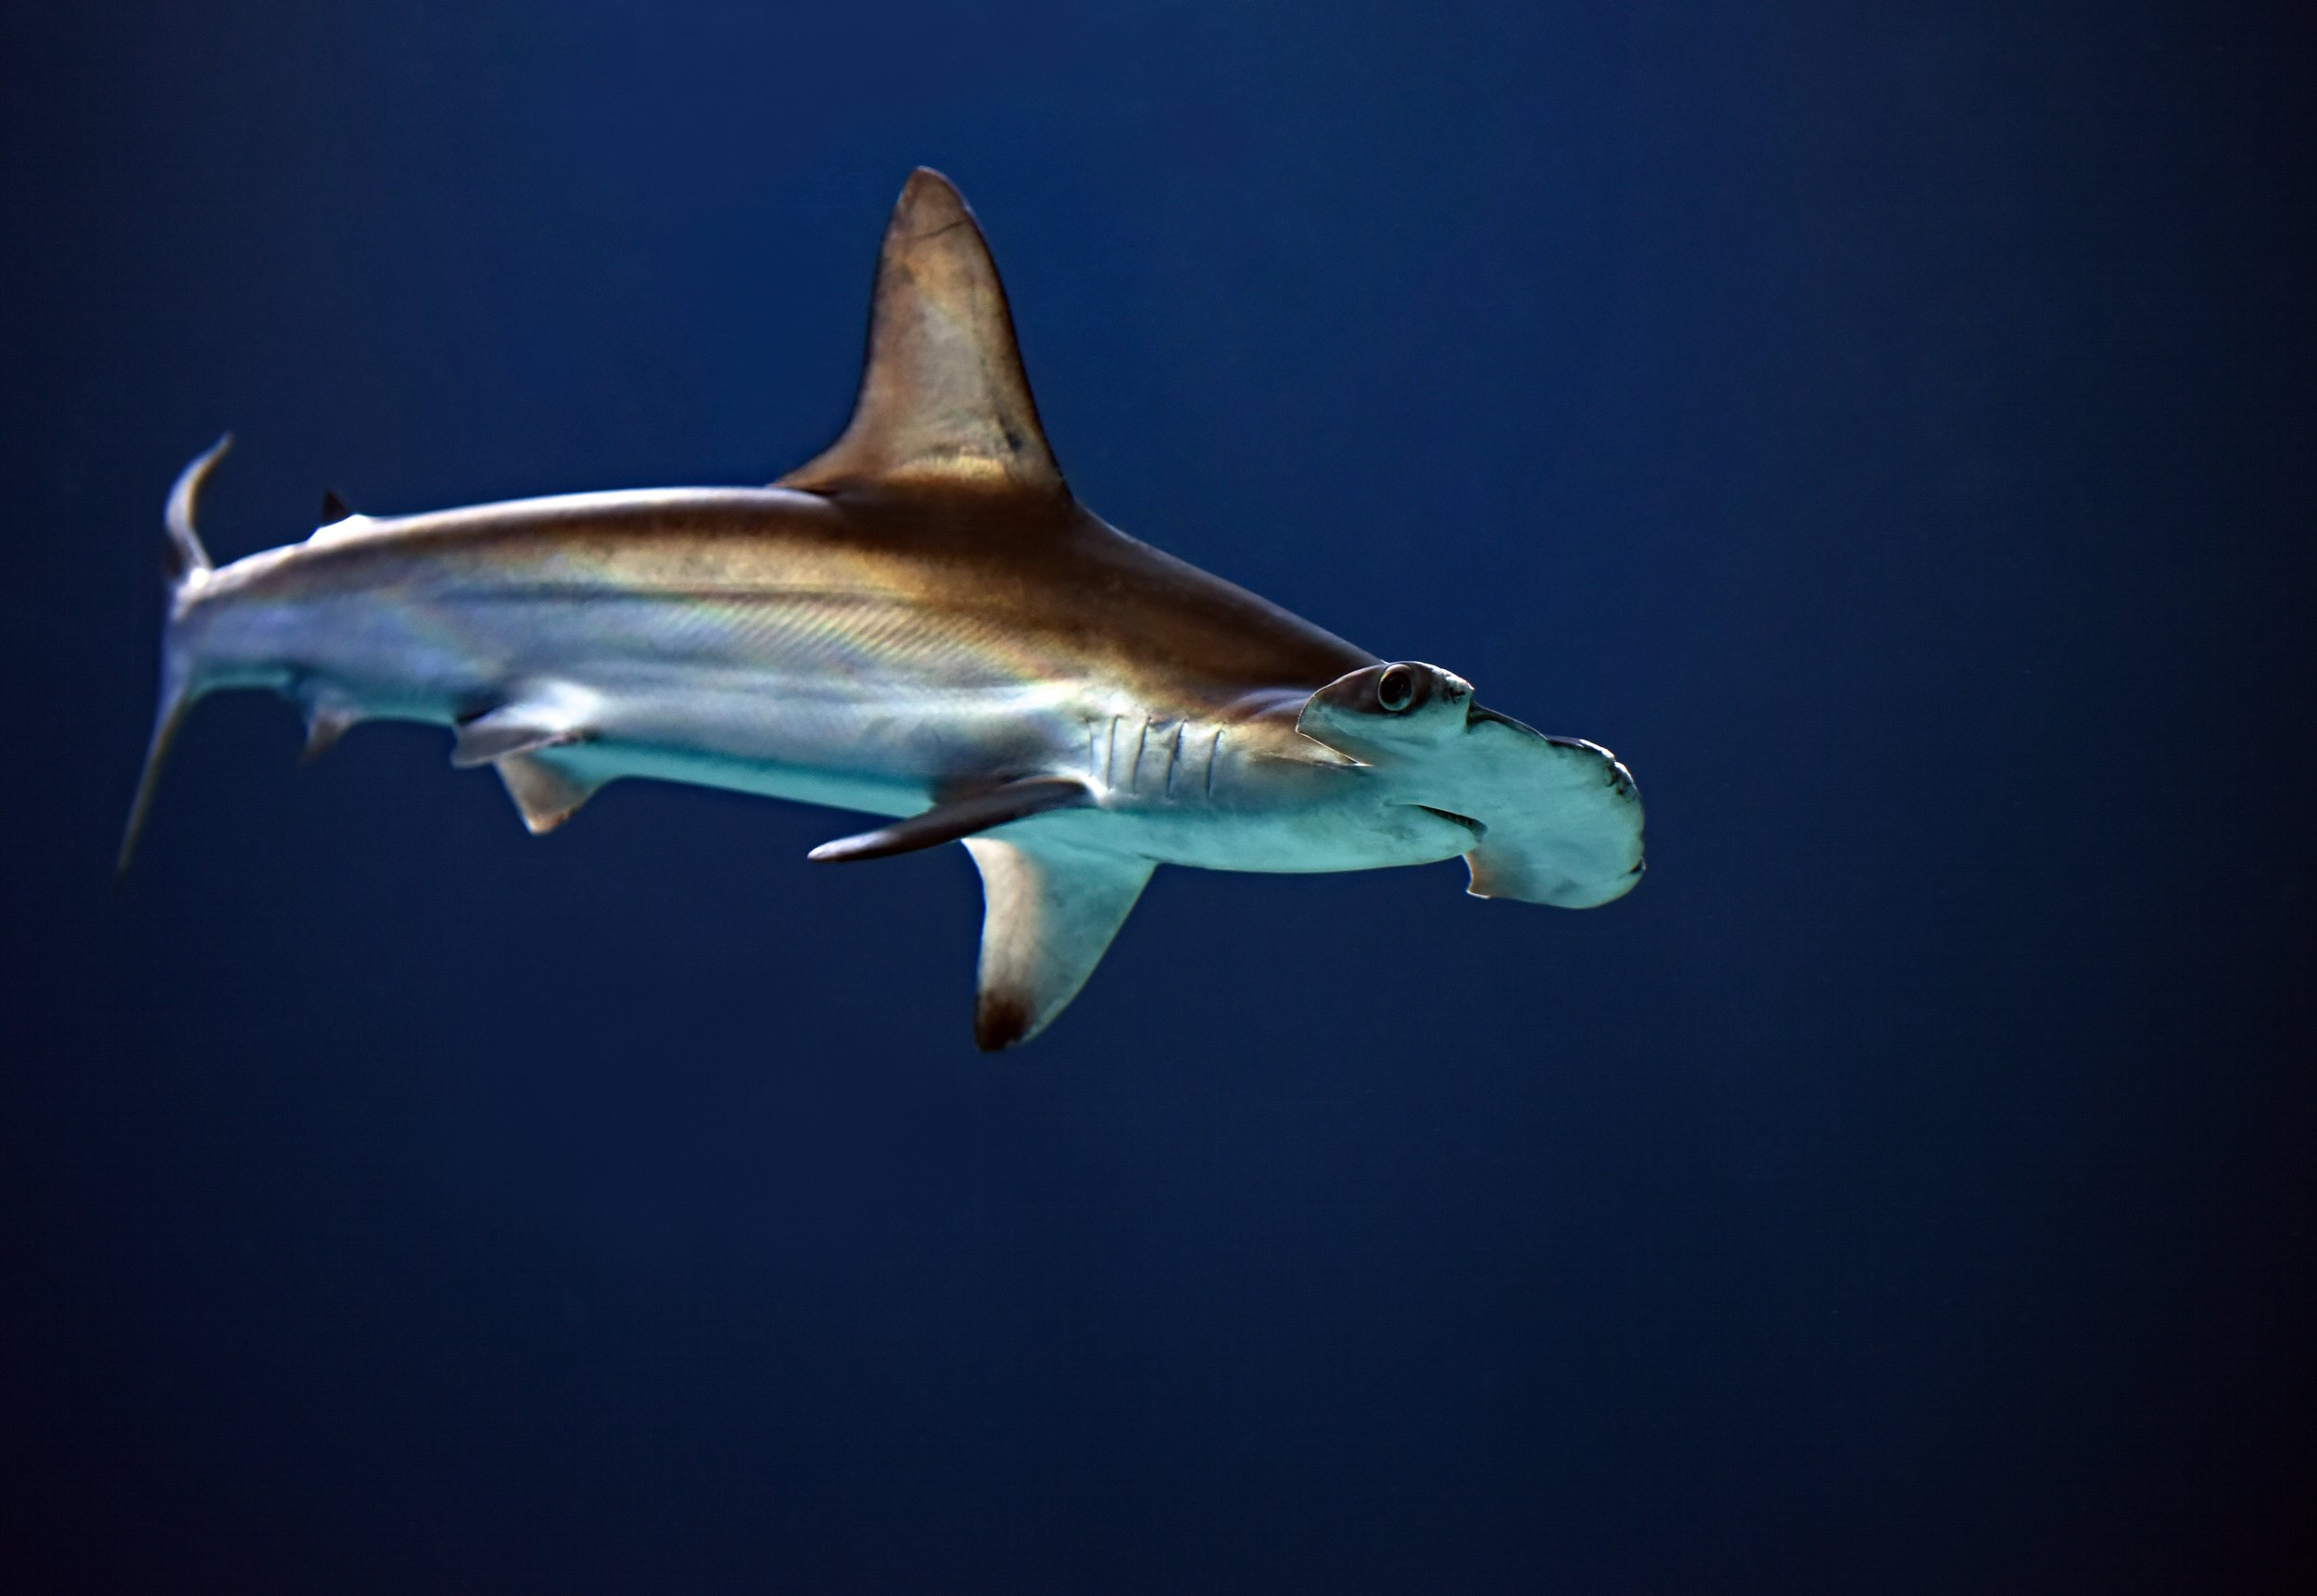 Hammerhead Shark - Easily my favorite shark of the bunch. Look at that distinguished head. Others may say they're